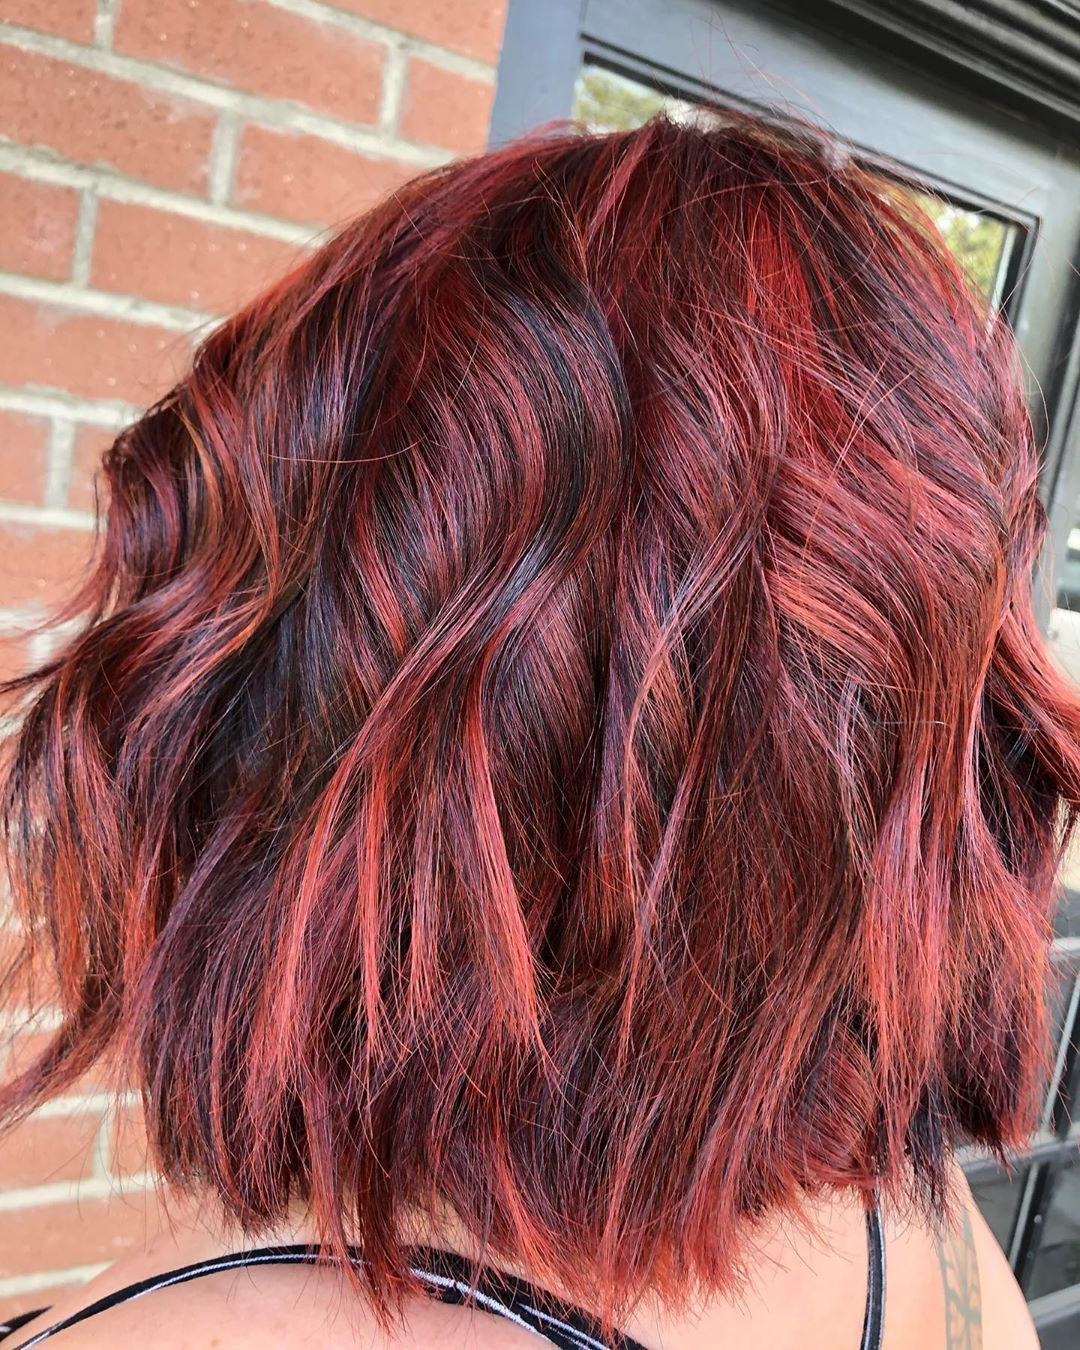 50+ Red Hair Color Ideas And Trends: Highlights, Styles Pertaining To Natural Brown Hairstyles With Barely There Red Highlights (View 11 of 20)